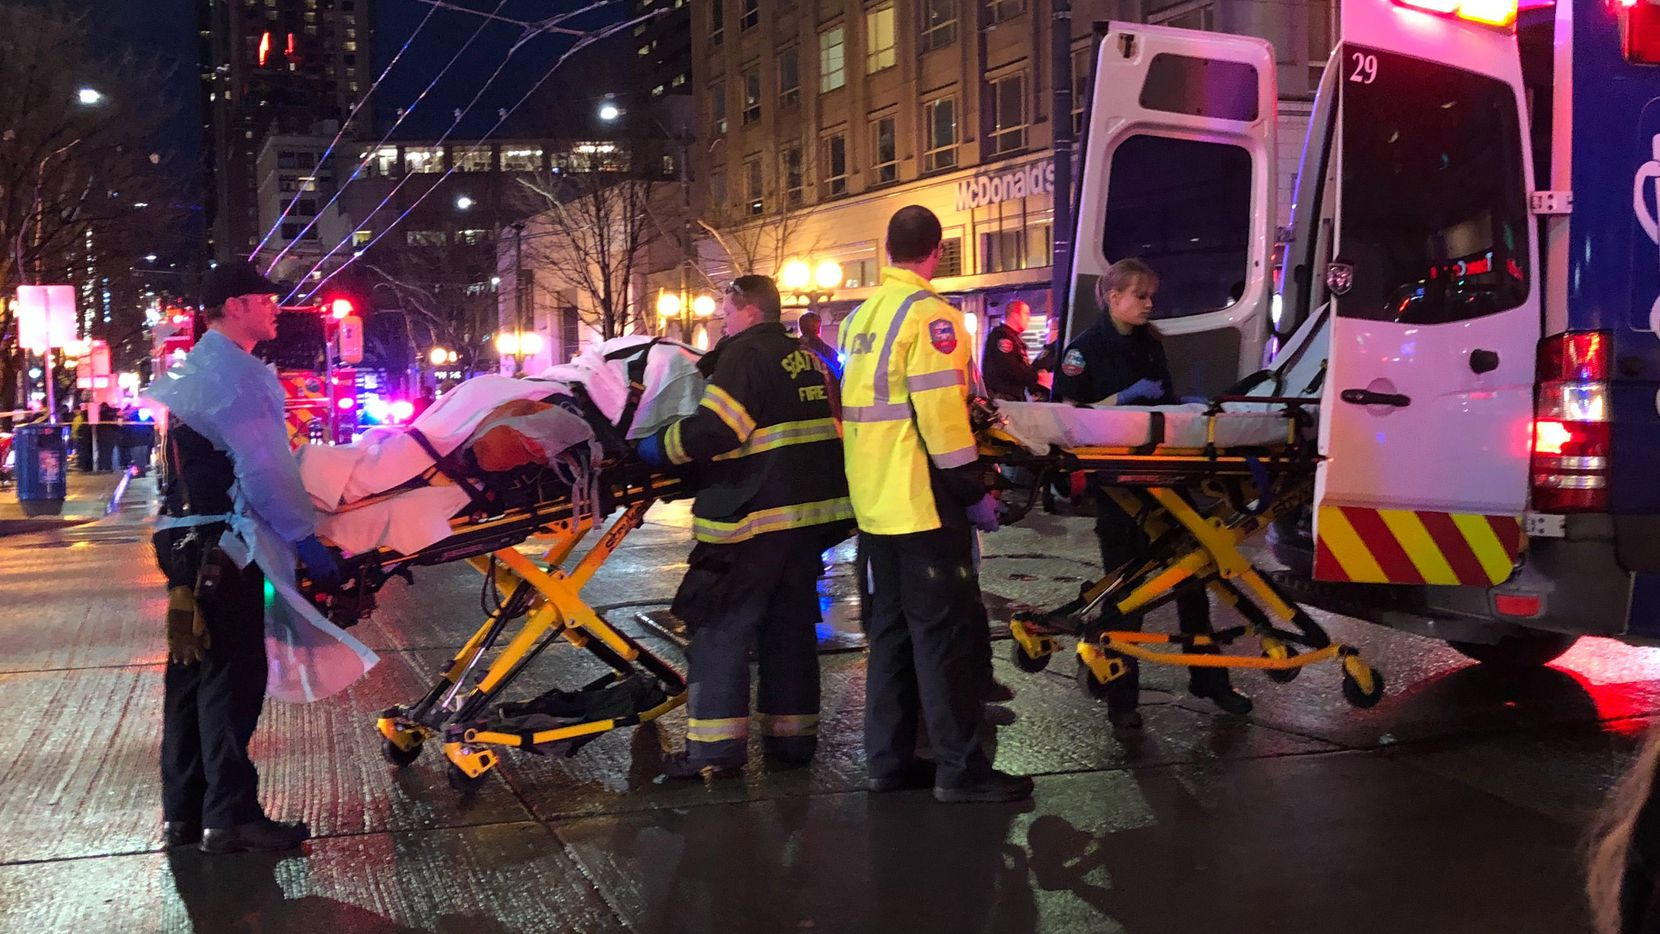 SEATTLE, WA - JANUARY 22: EMT and Police give first aid to a shooting victim in downtown on January 22, 2020 in Seattle, Washington. As many as seven people have been reportedly injured and police are still searching for the suspect. (Photo by Chris Porter/Getty Images)